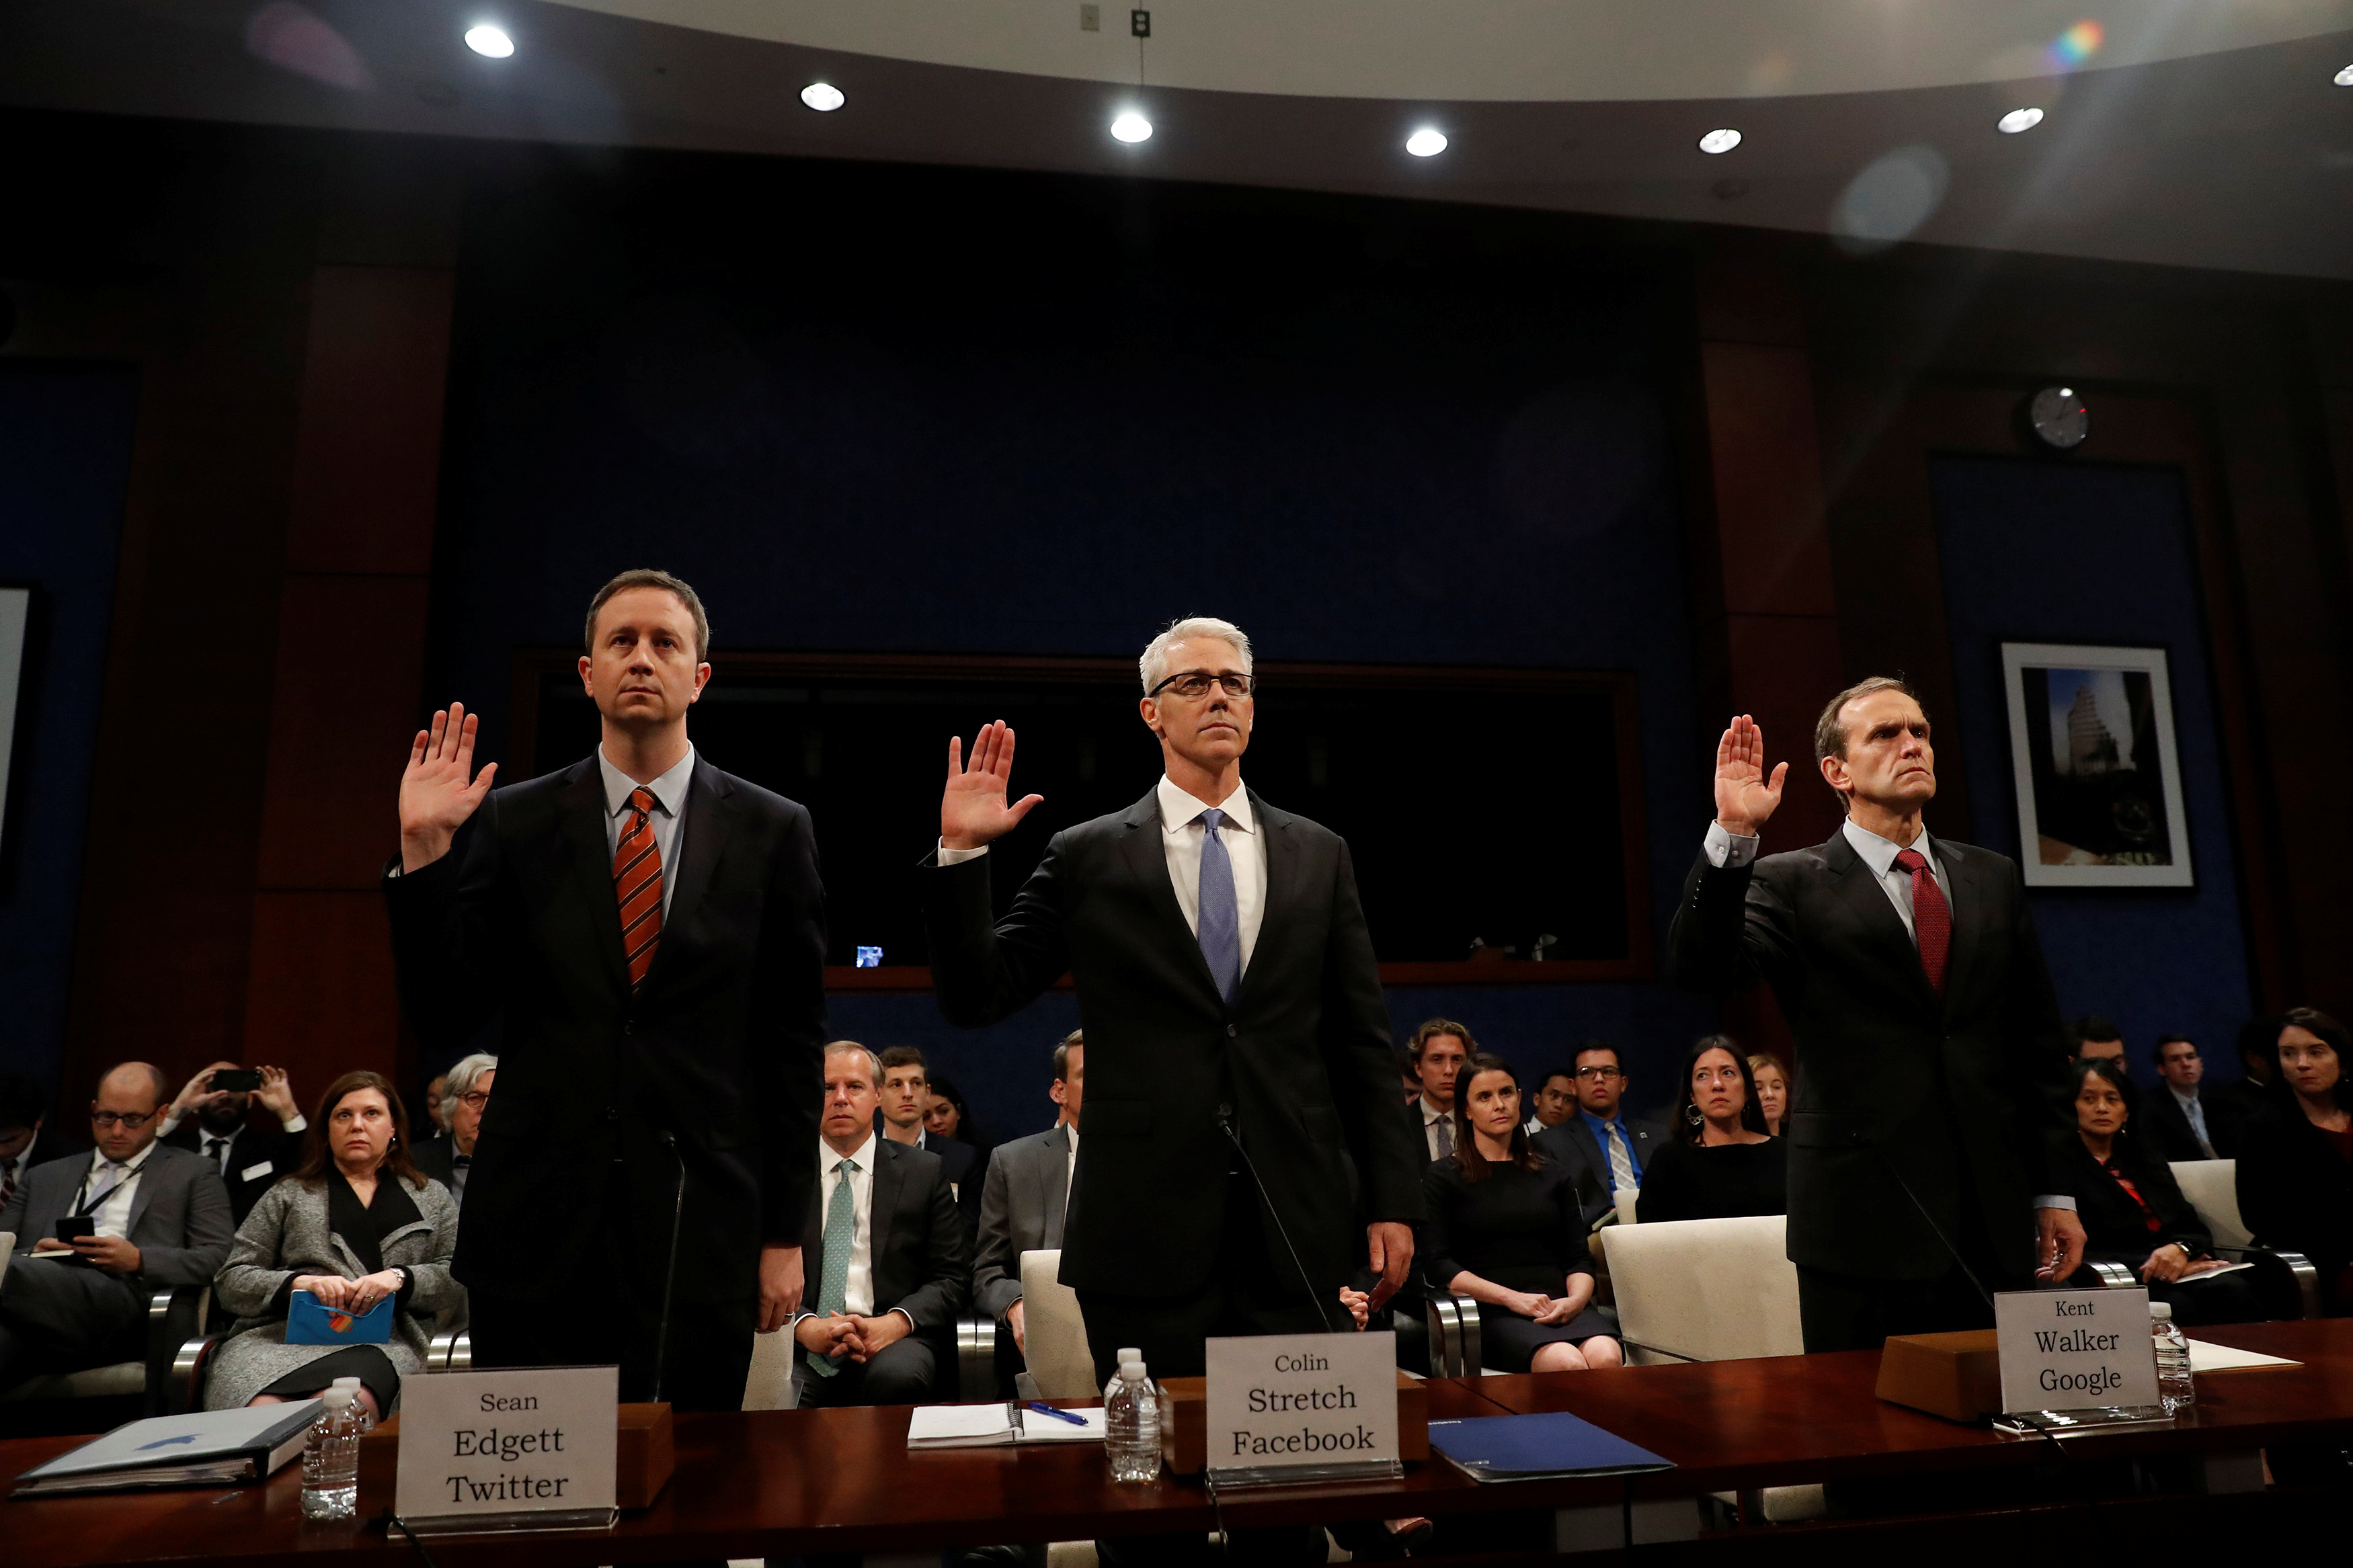 Twitter Acting General Counsel Sean Edgett, Facebook General Counsel Colin Stretch and Google Senior Vice President and General Counsel Kent Walker are sworn in before the House Intelligence Committee to answer questions related to Russian use of social media to influence U.S. elections, on Capitol Hill in Washington, U.S., November 1, 2017.